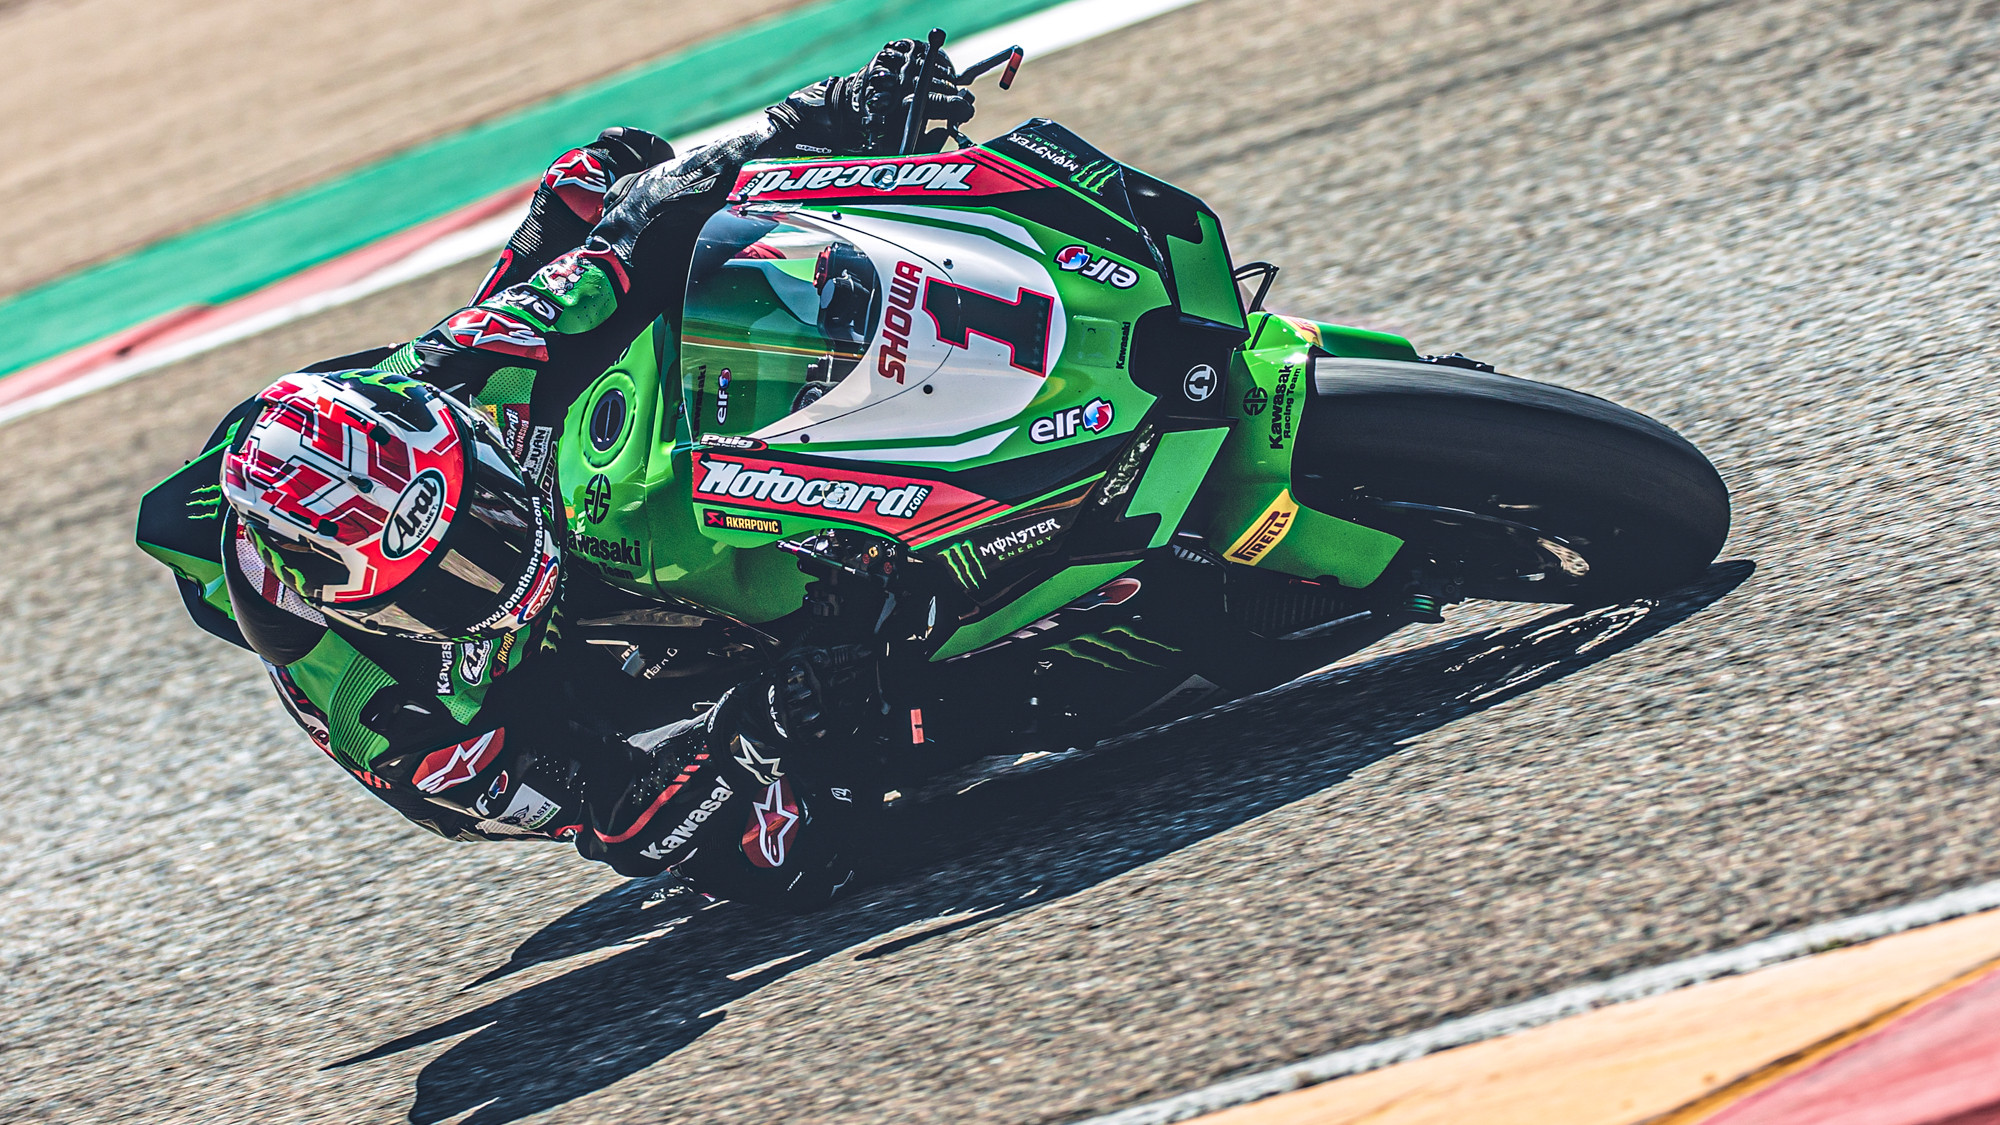 Rea smashes pole lap record pace at Aragon test, Laverty makes first 2021 appearance